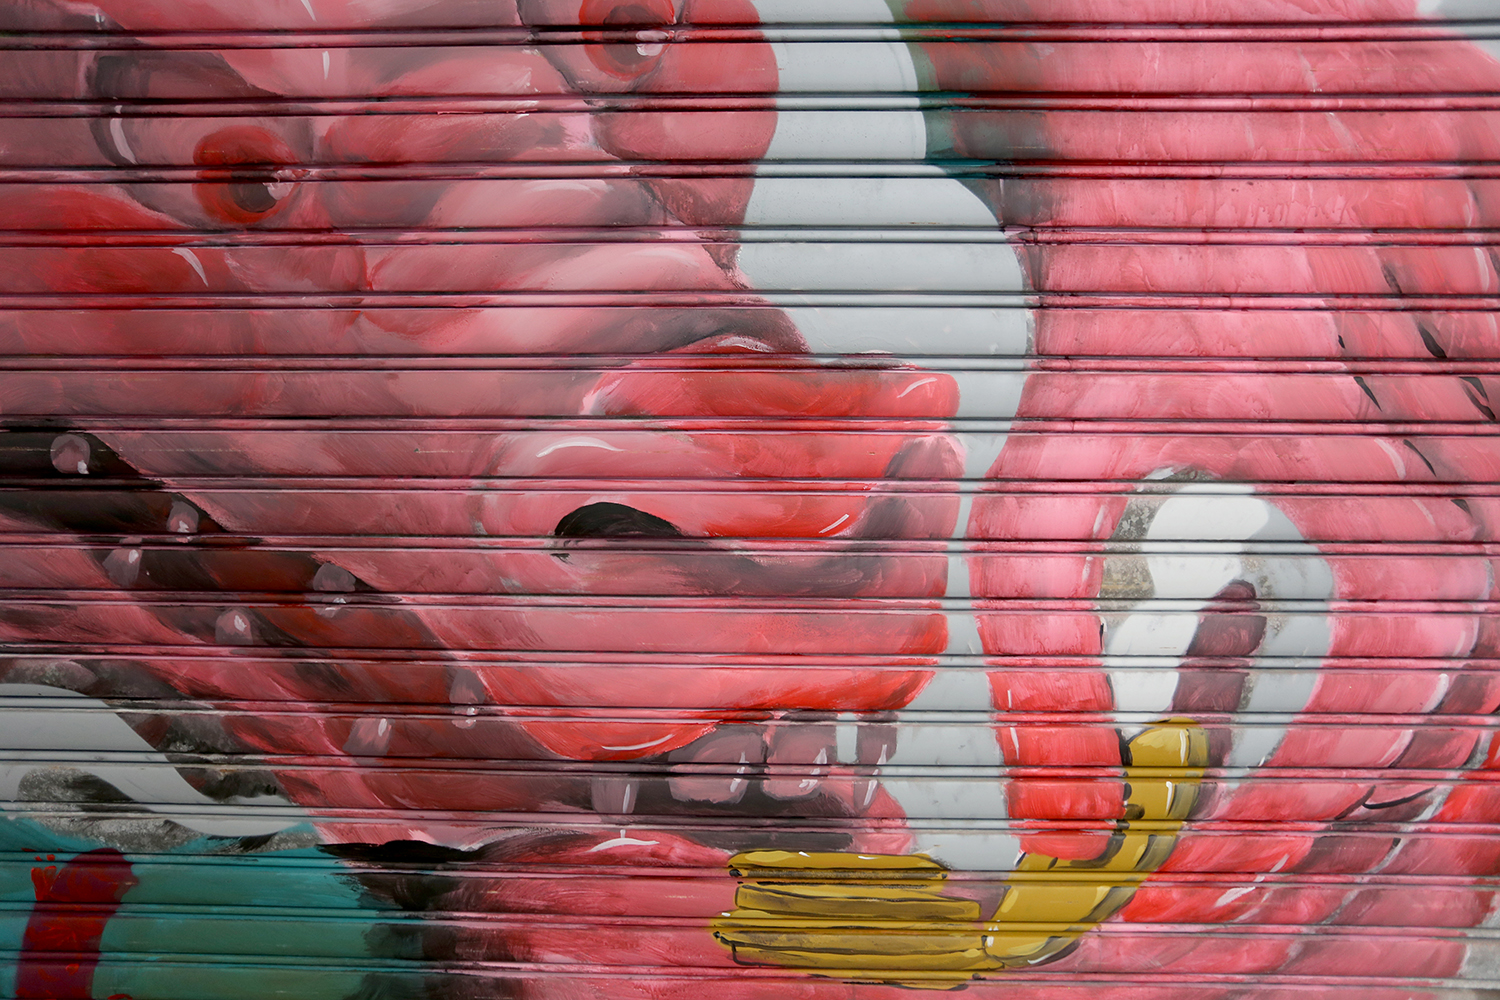 barlo-new-shutter-at-stanley-market-hong-kong-04